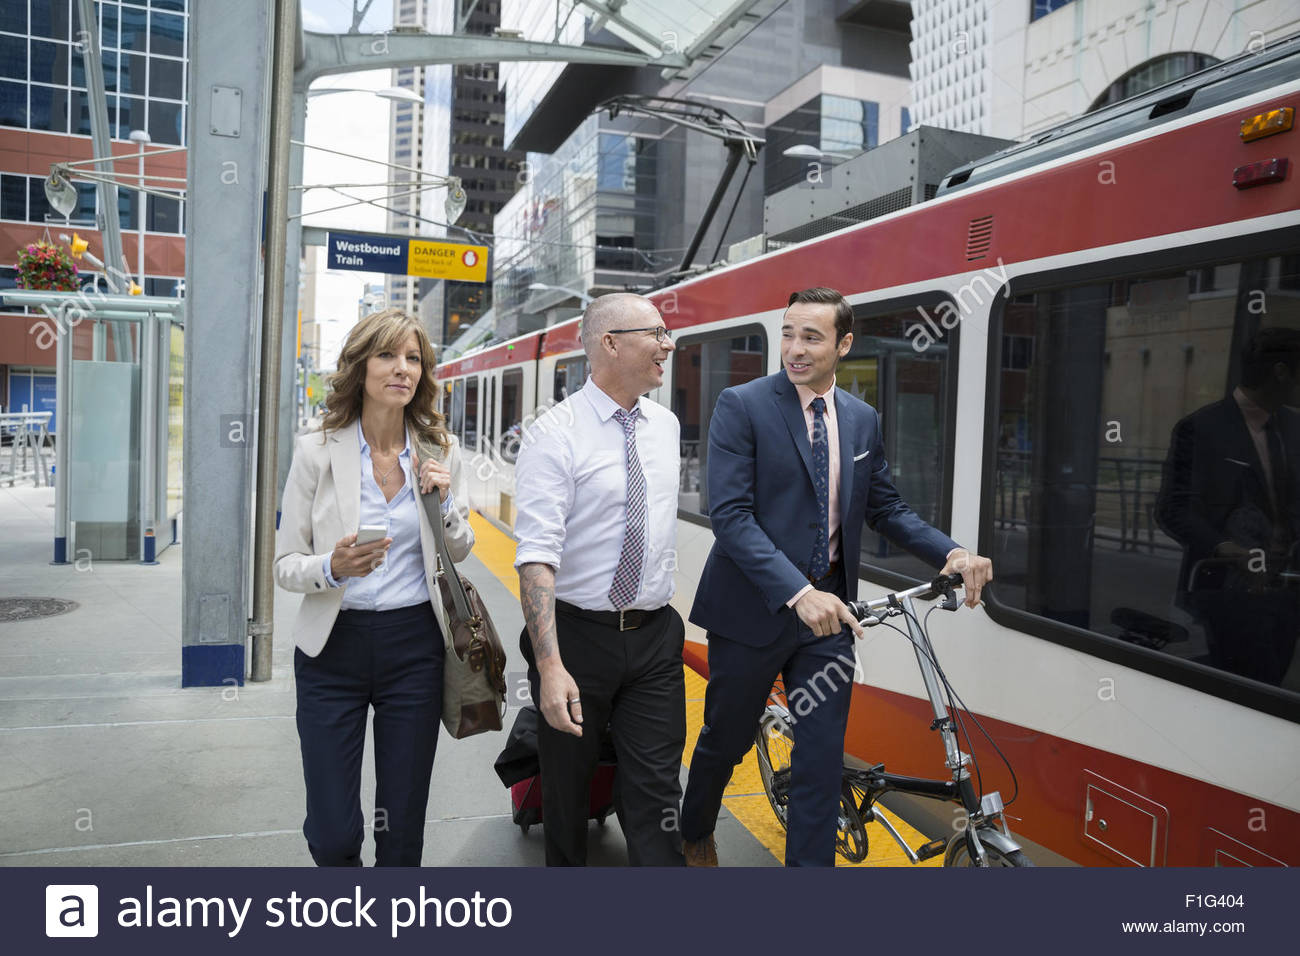 Business people walking along train station platform - Stock Image